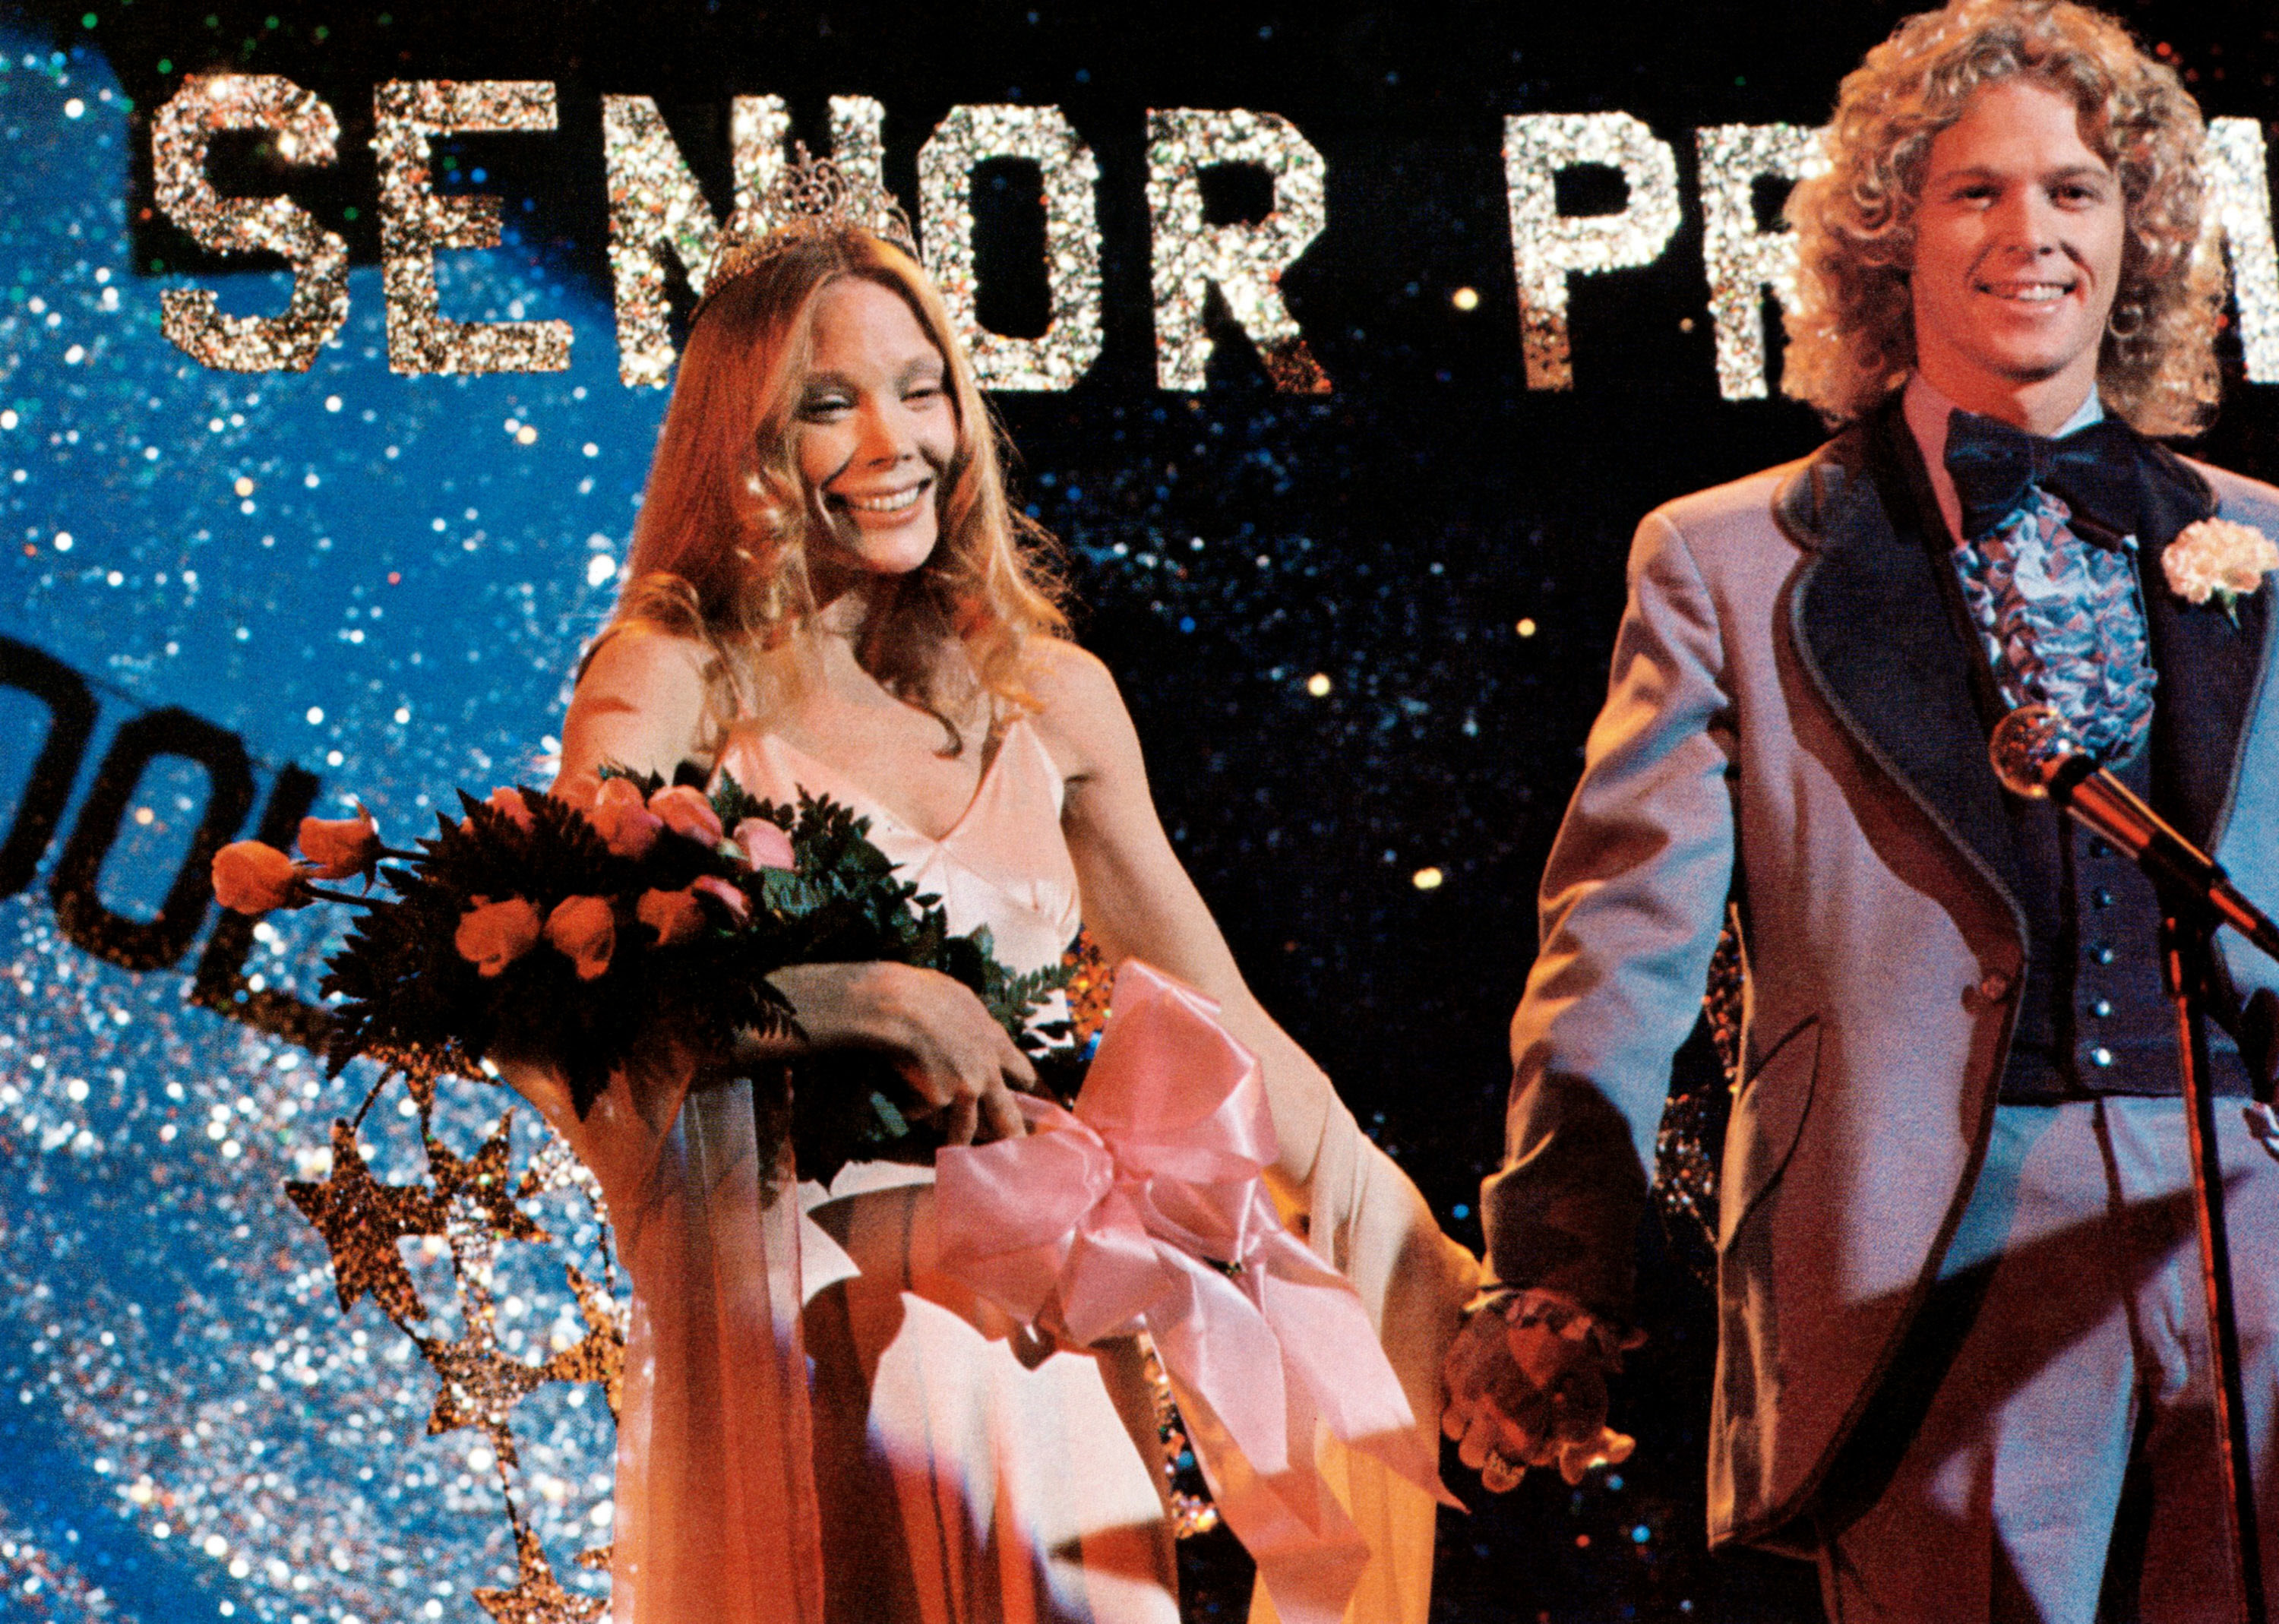 Carrie becoming prom queen and holding hands with her date